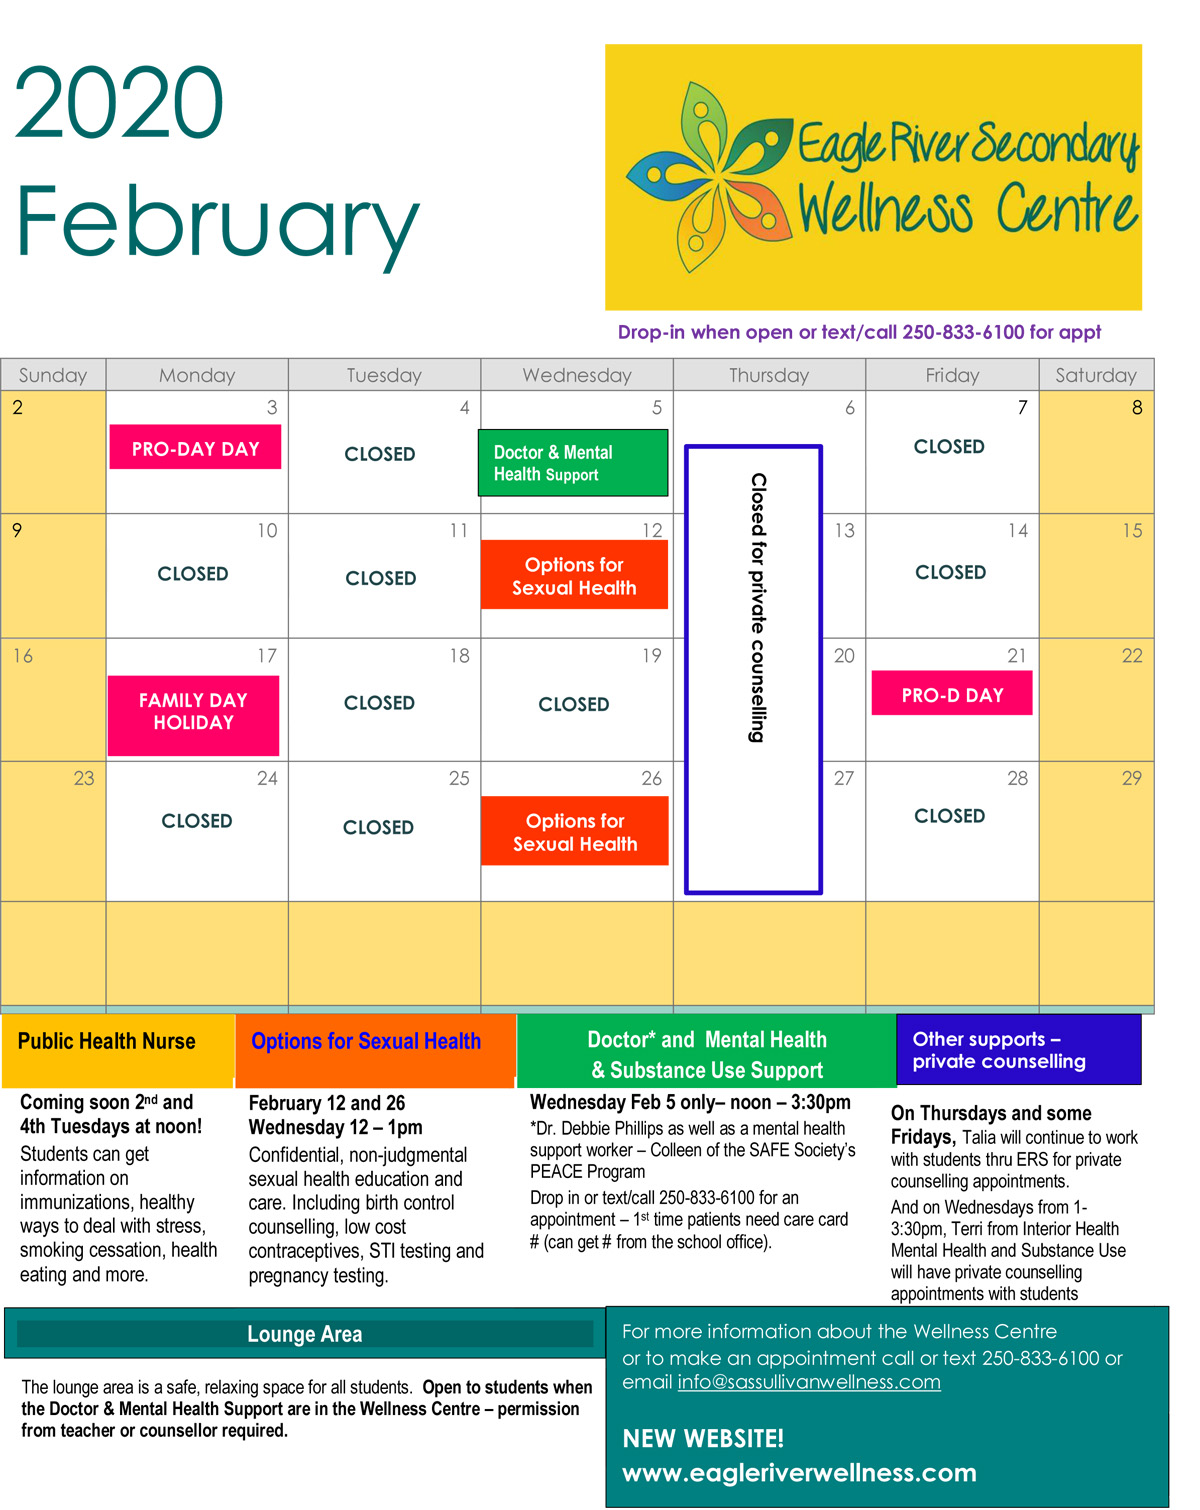 February 2020 ERS Wellness Centre Calendar